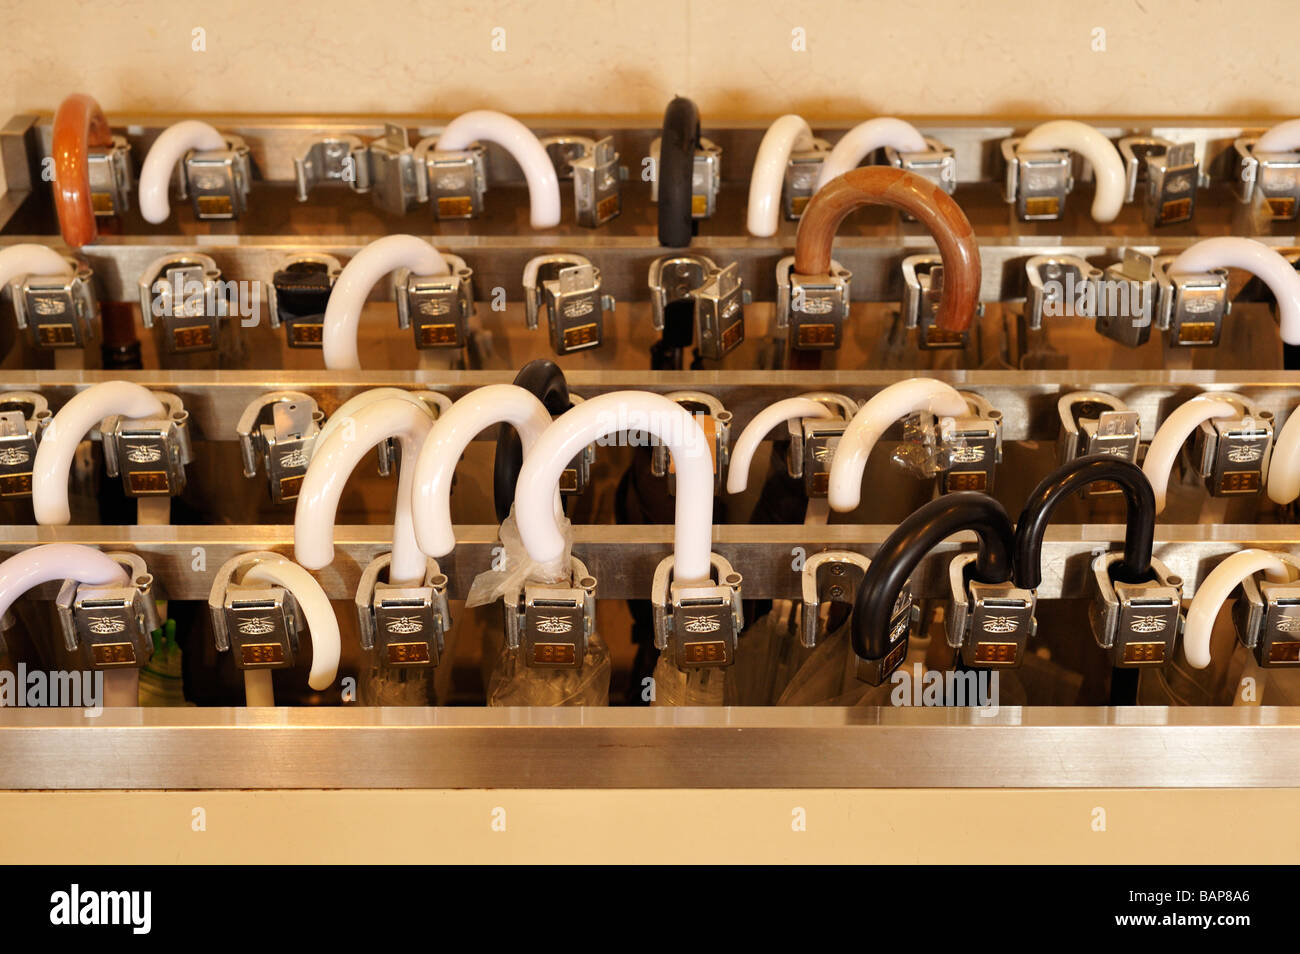 An umbrella locker in front of a hotel lobby, Kyoto JP - Stock Image